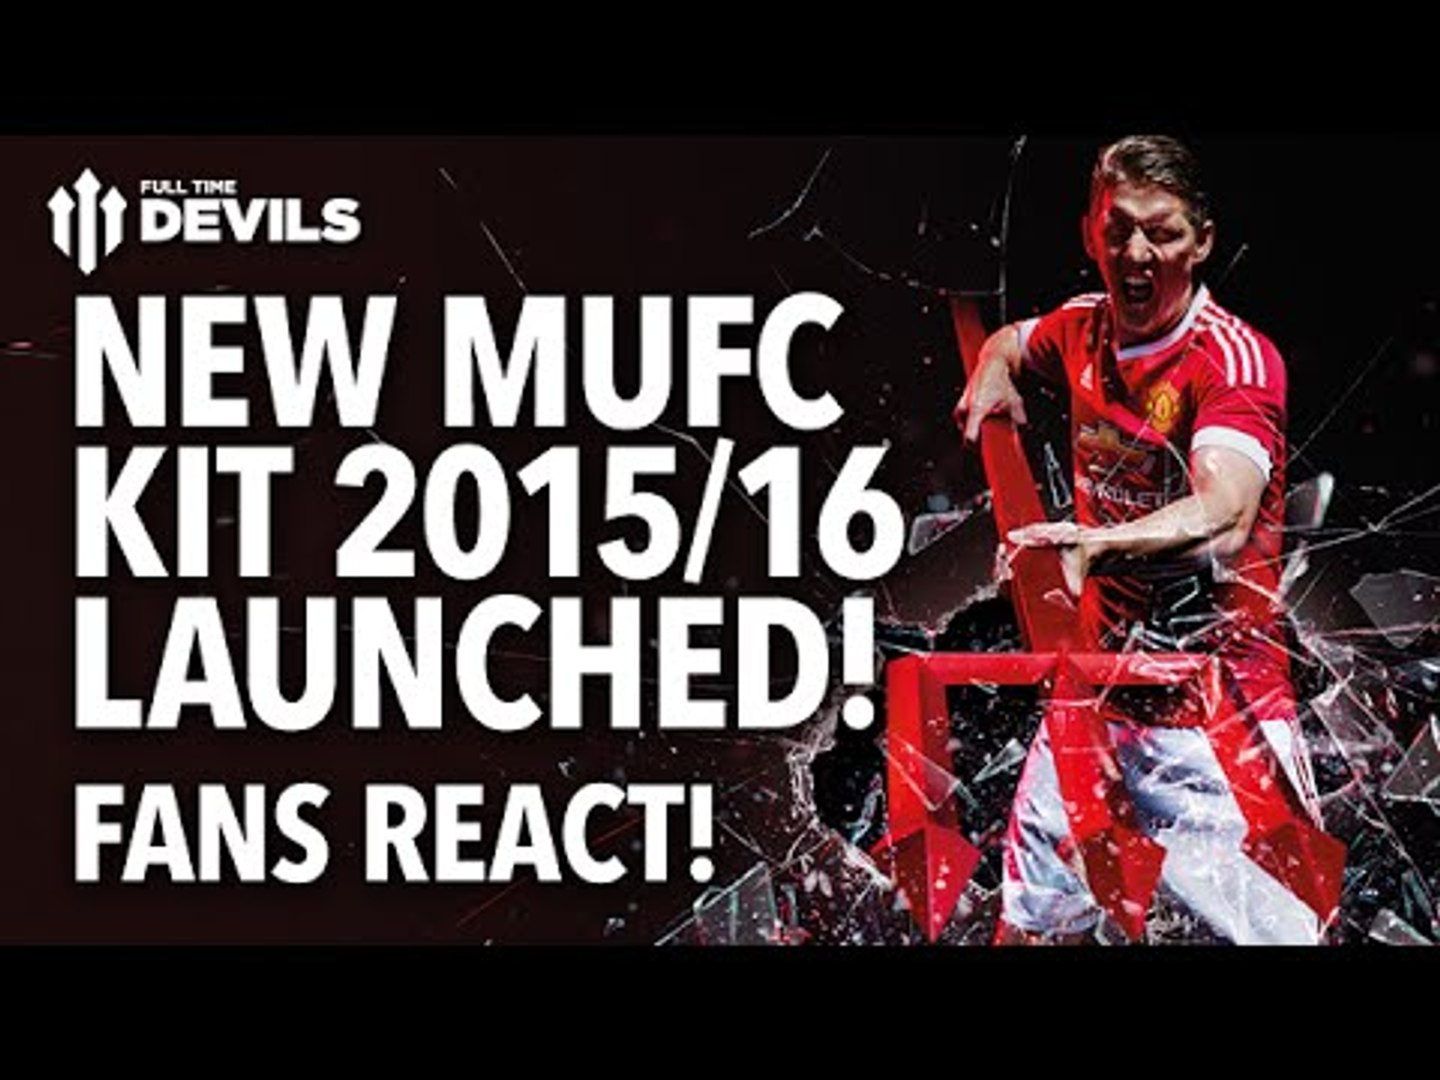 New United Kit 2015/16 Launched! Fans React! | Manchester United | #BeTheDifference